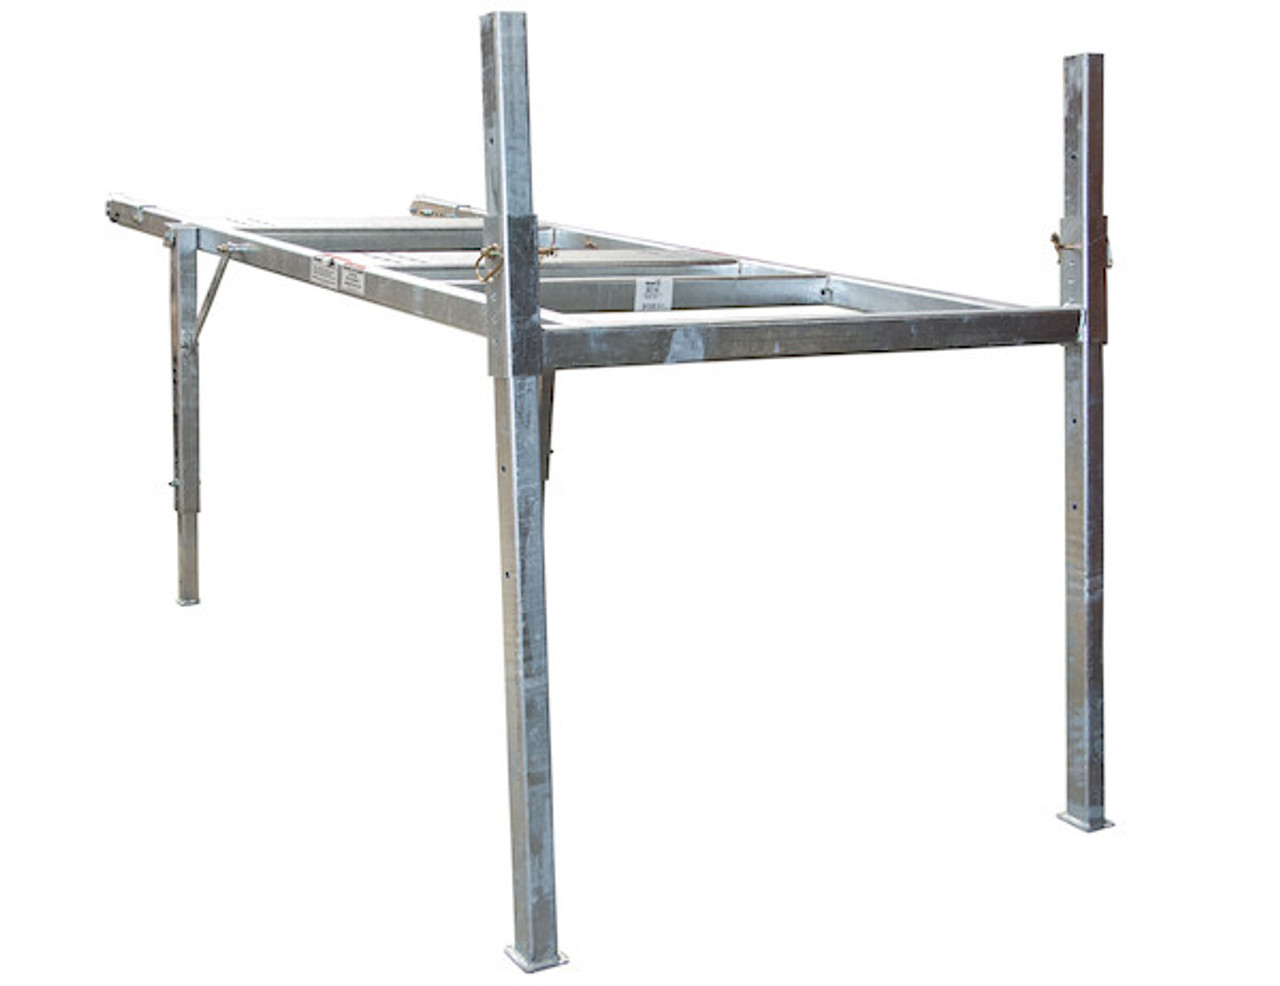 BUYERS 3037146 8 Foot Mid-Size Hot-Dipped Galvanized Spreader Stand for SaltDogg Spreader 2